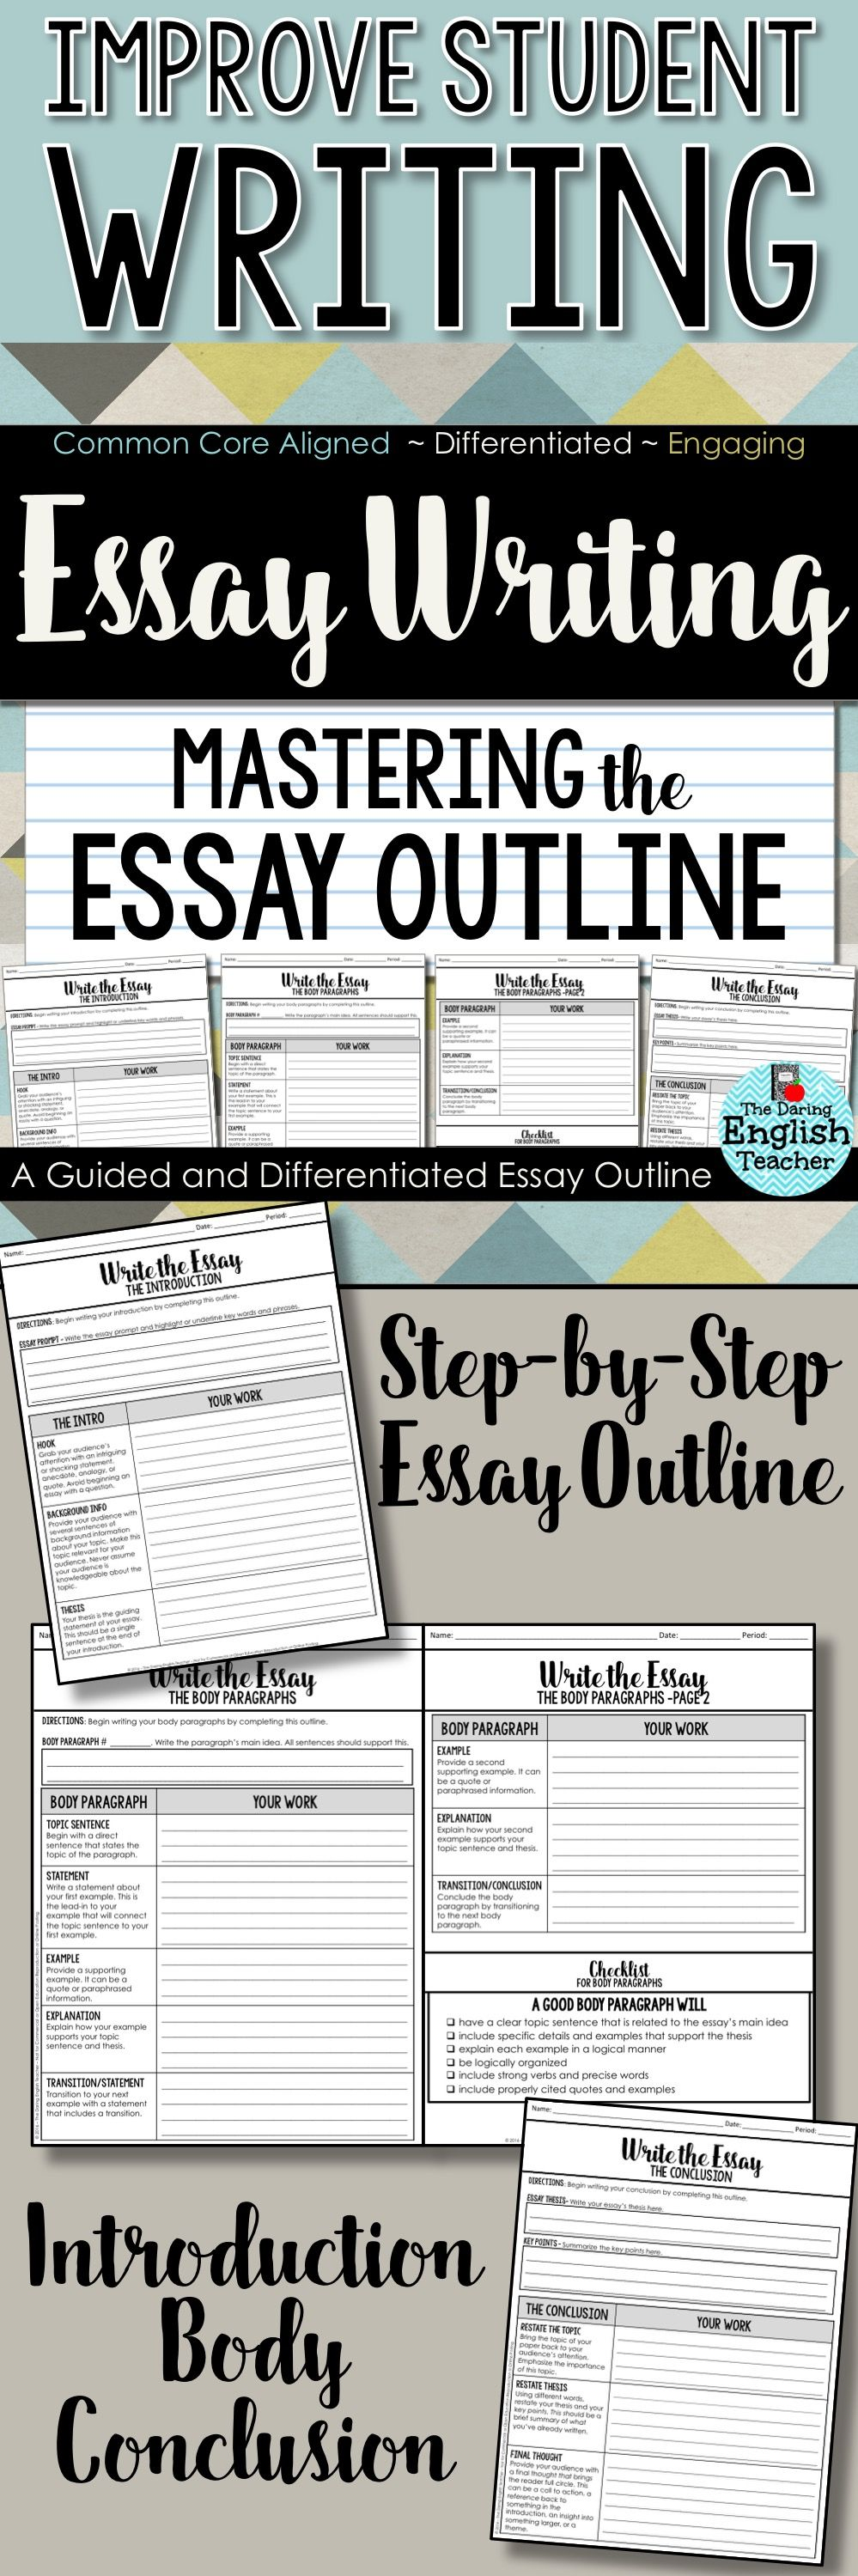 Essay Writing Mastering The Essay Outline With Guided Instructions  Essay Writing Mastering The Essay Outline With Guided Instructions